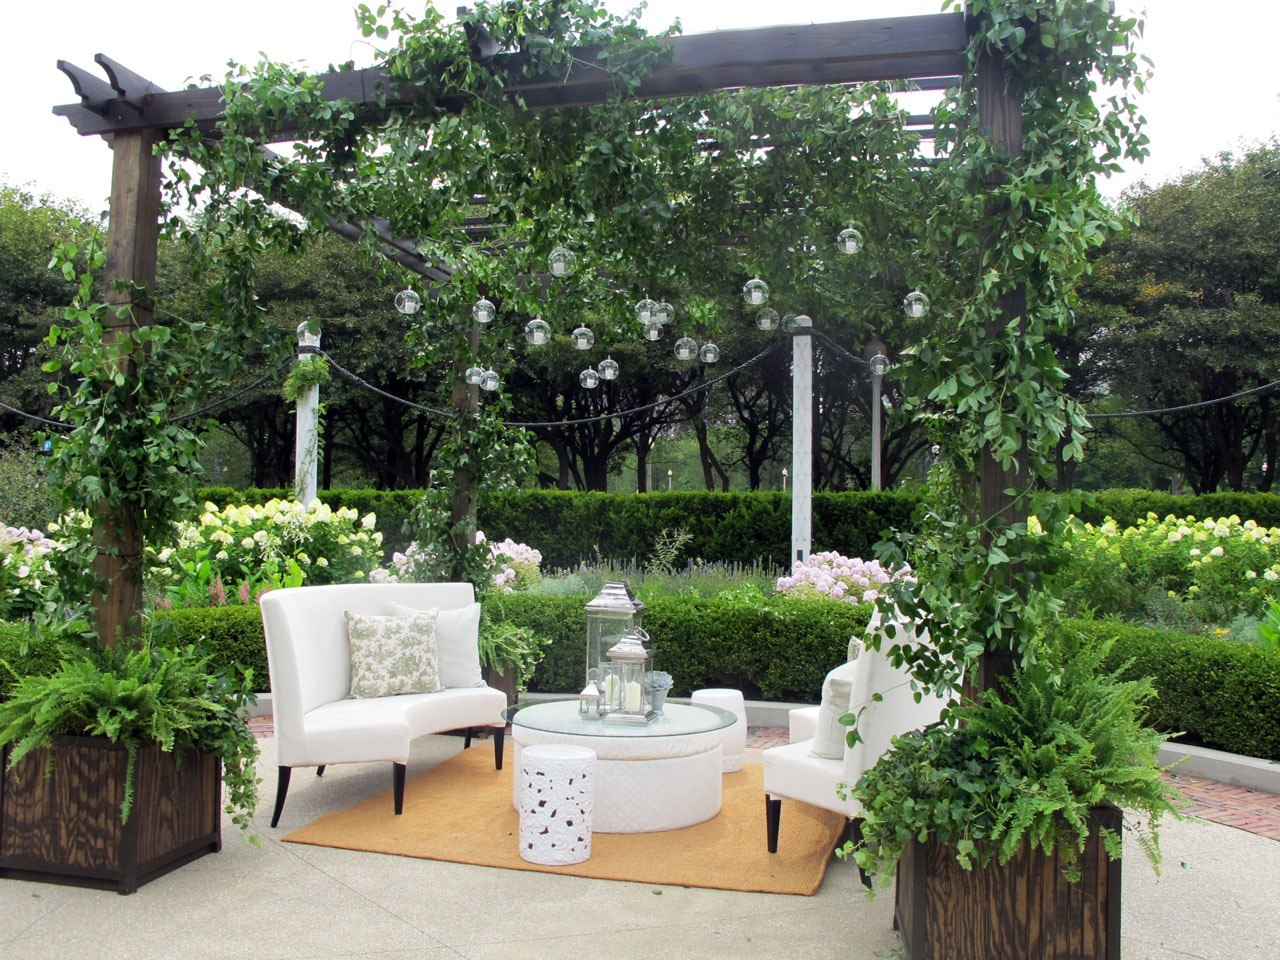 Outdoor garden party with lounge